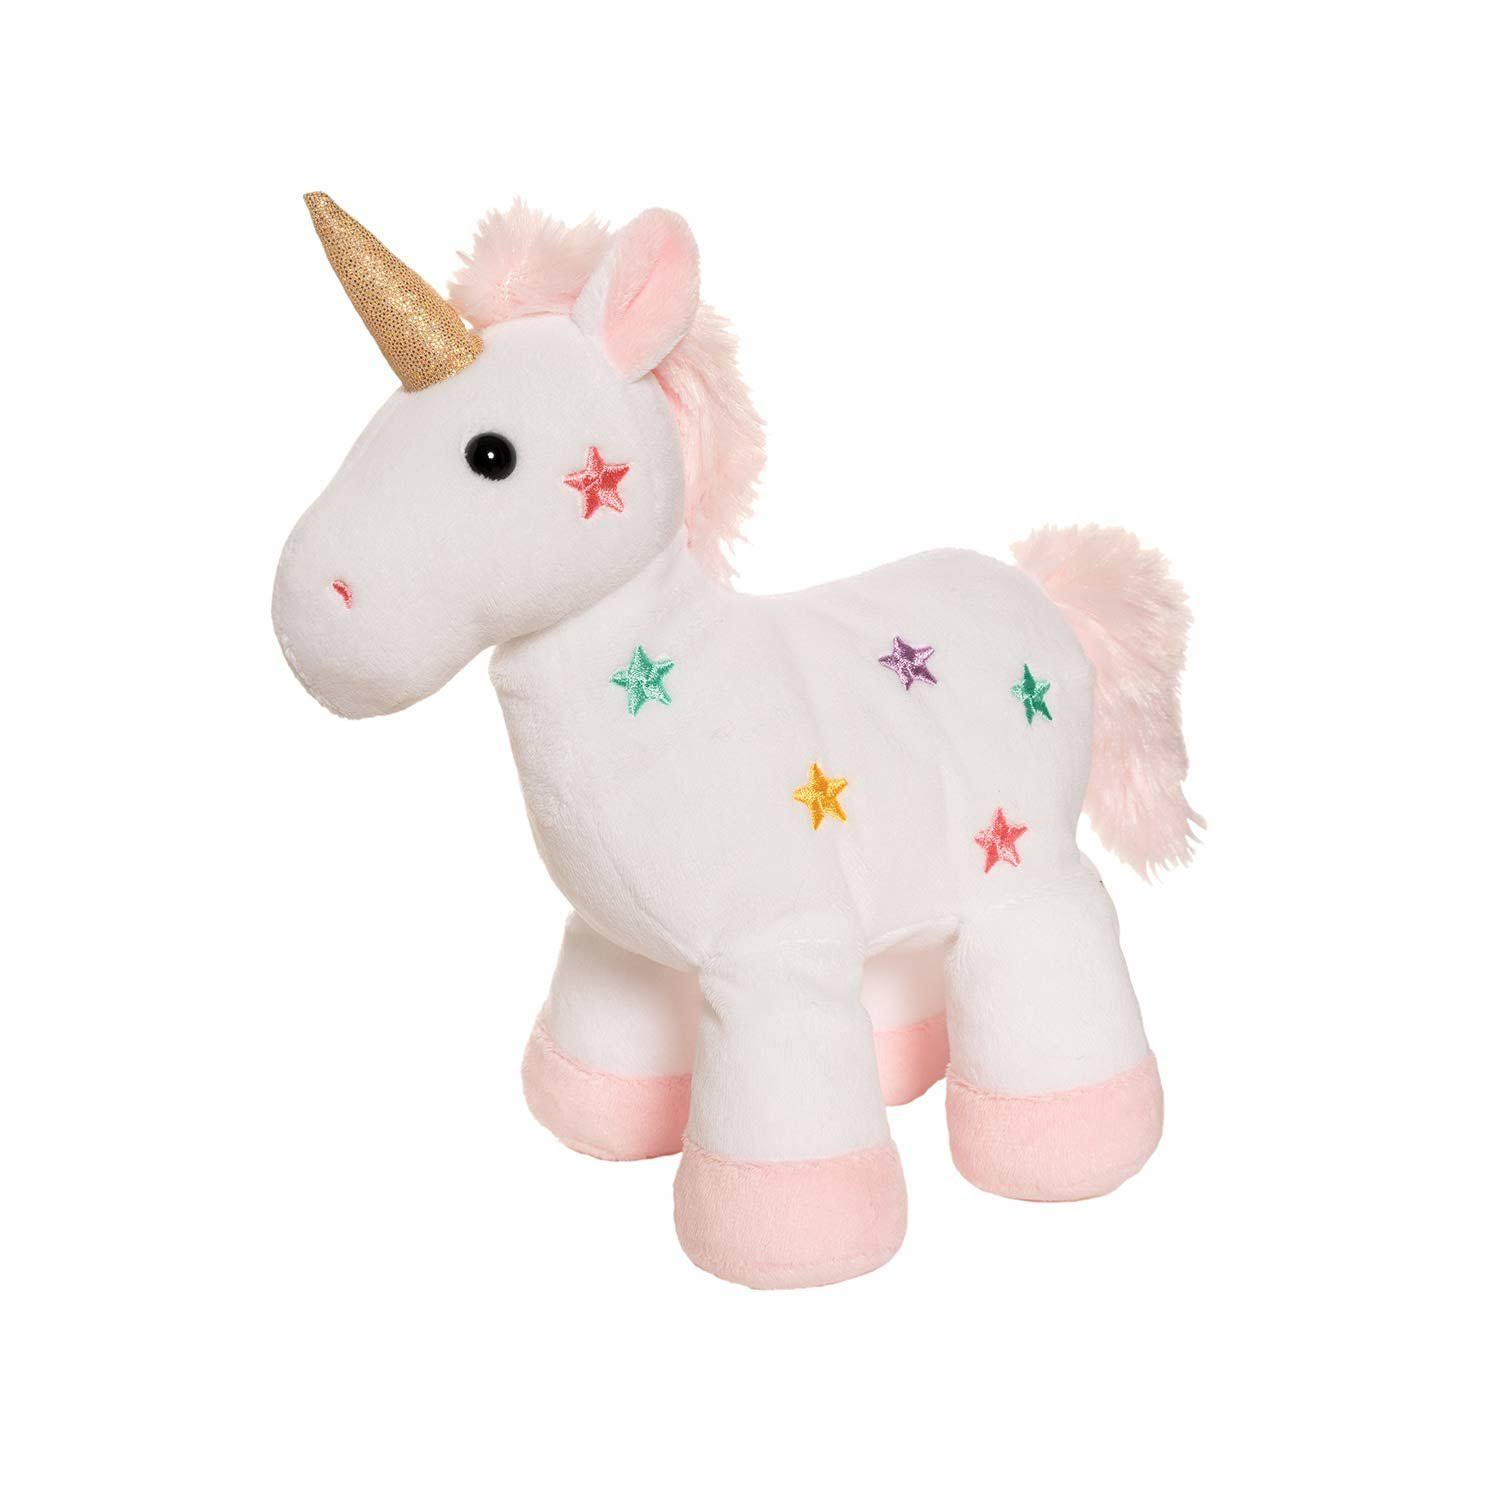 "Manhattan Toy Mon AMI Twinkle 10"" Unicorn Stuffed Animal"